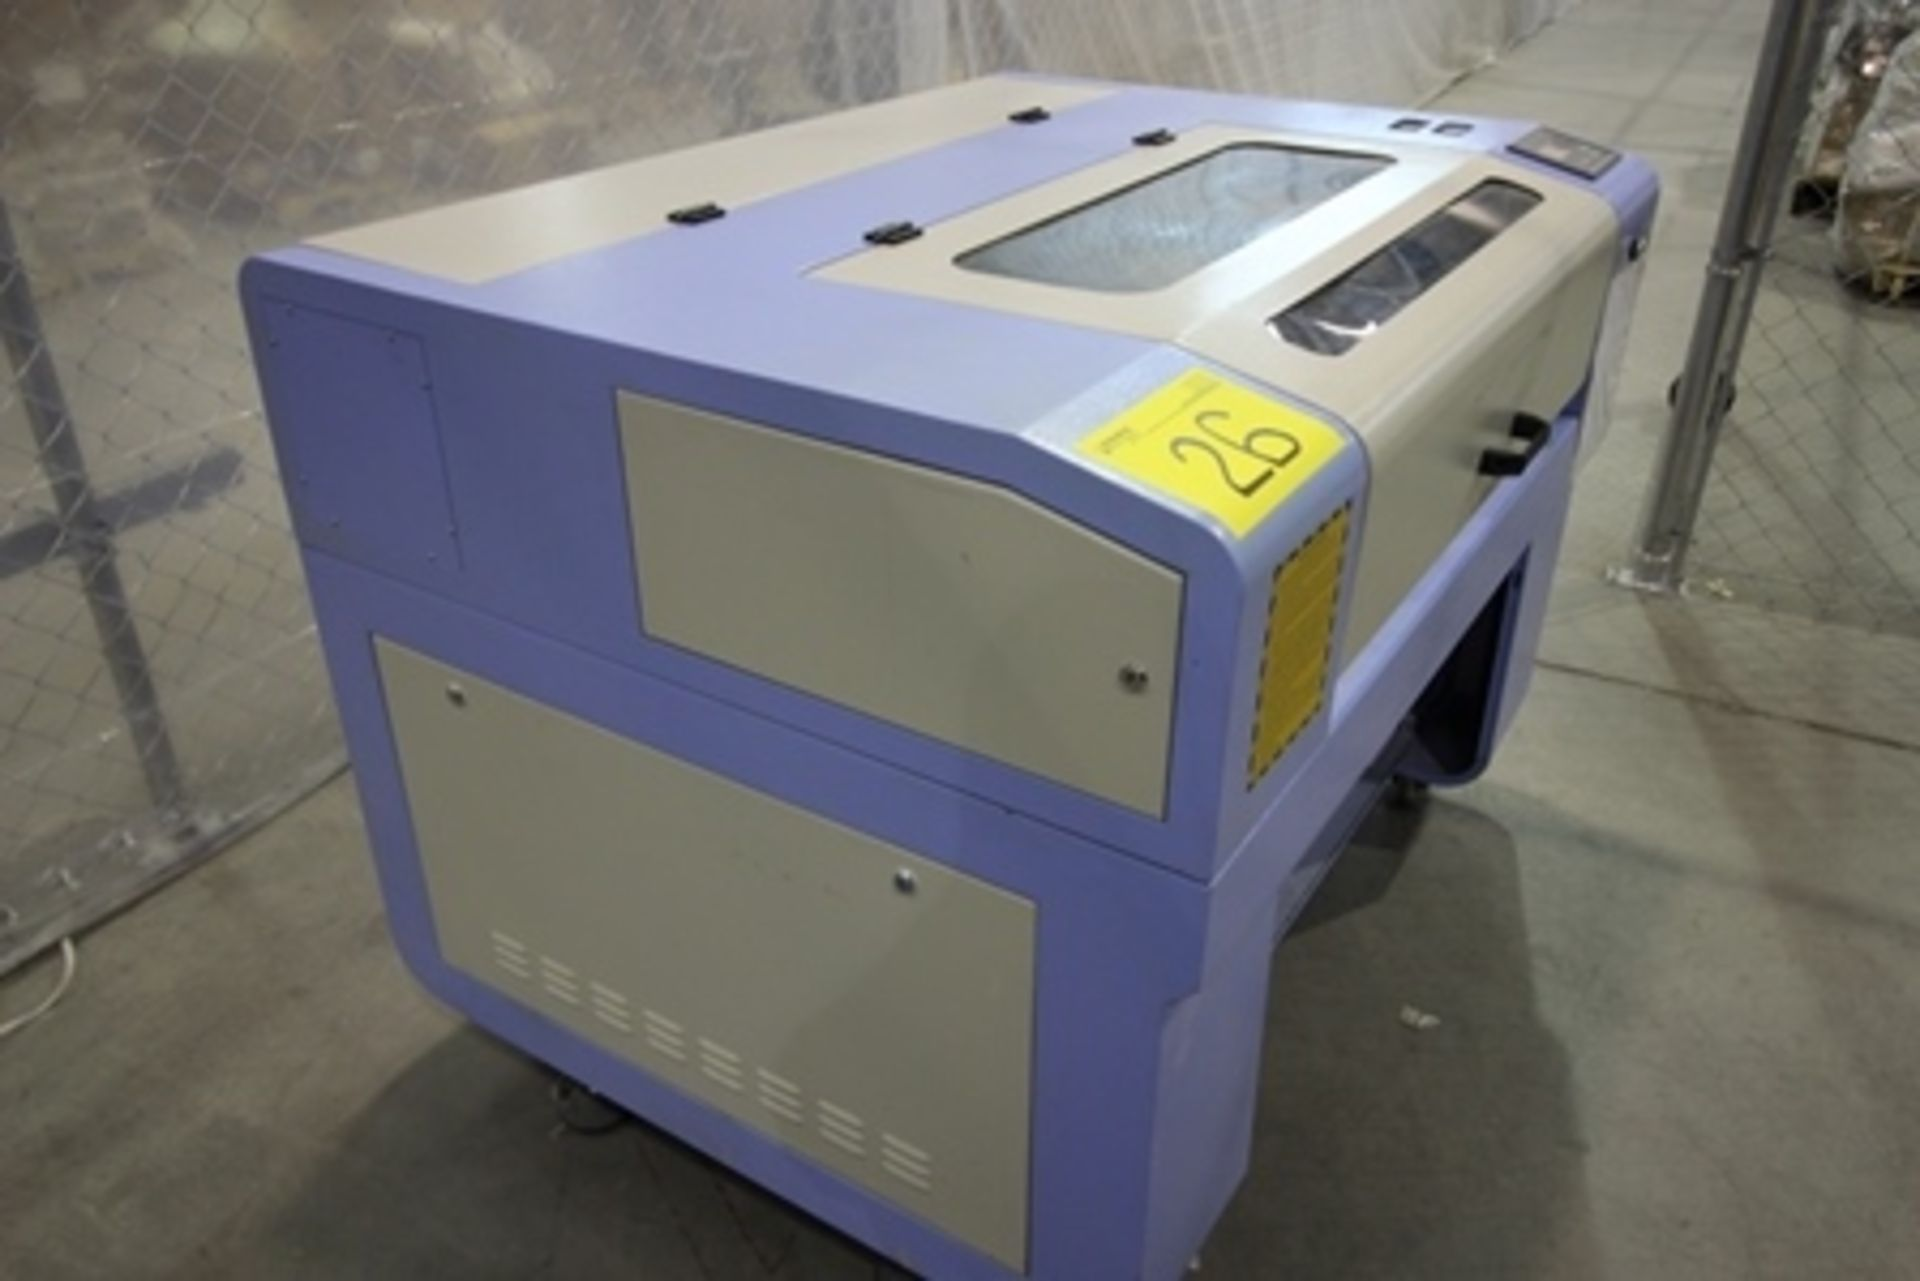 Lot 26 - 2017 Phillican CO2 laser engraver and cutting machine, model 6090. Laser power: 80x2w, 3.2Kw, series